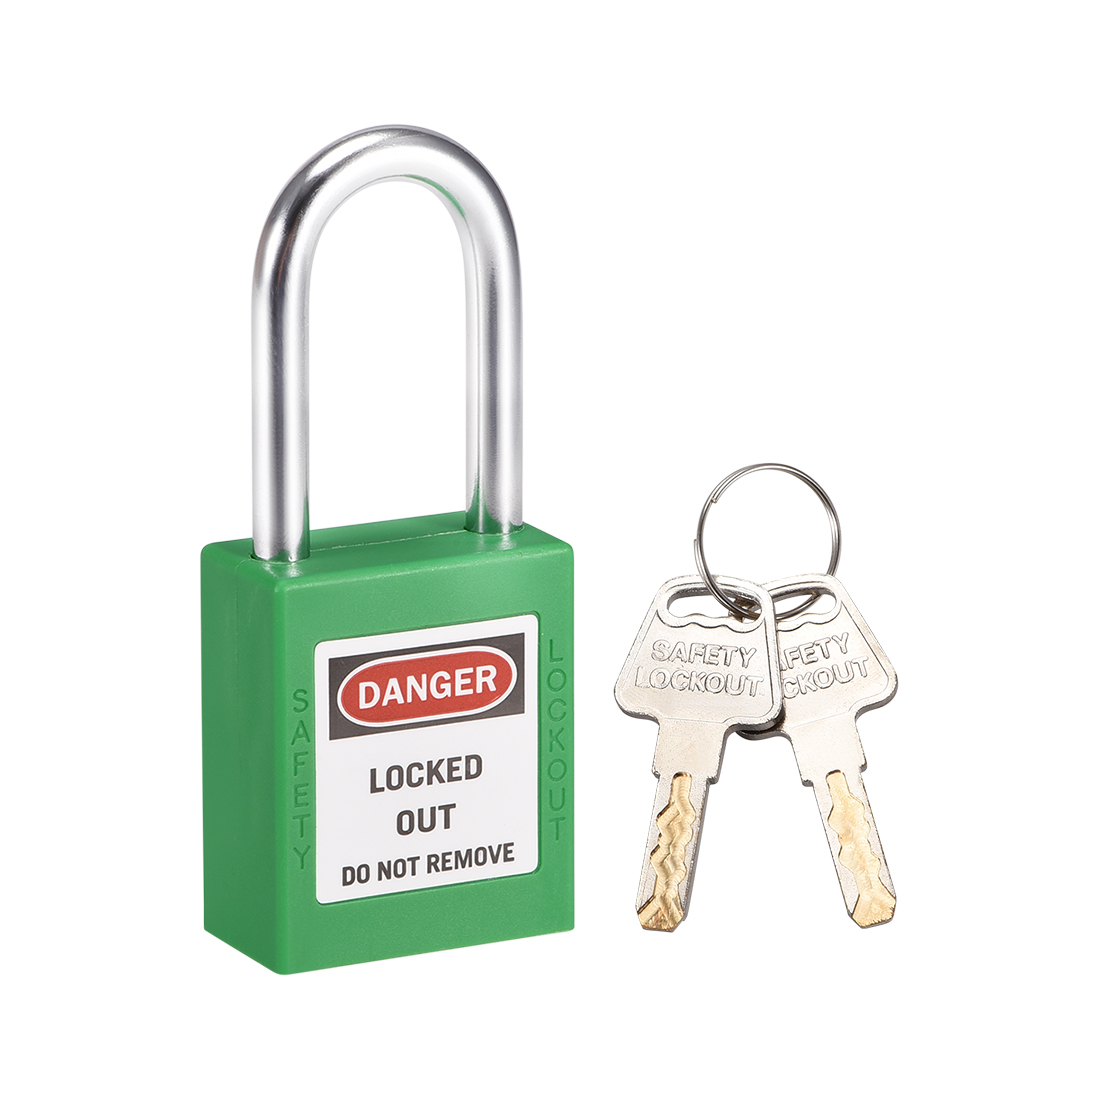 Lockout Tagout Locks 1-1/2 Inch Shackle Key Different Safety Padlock Grass Green